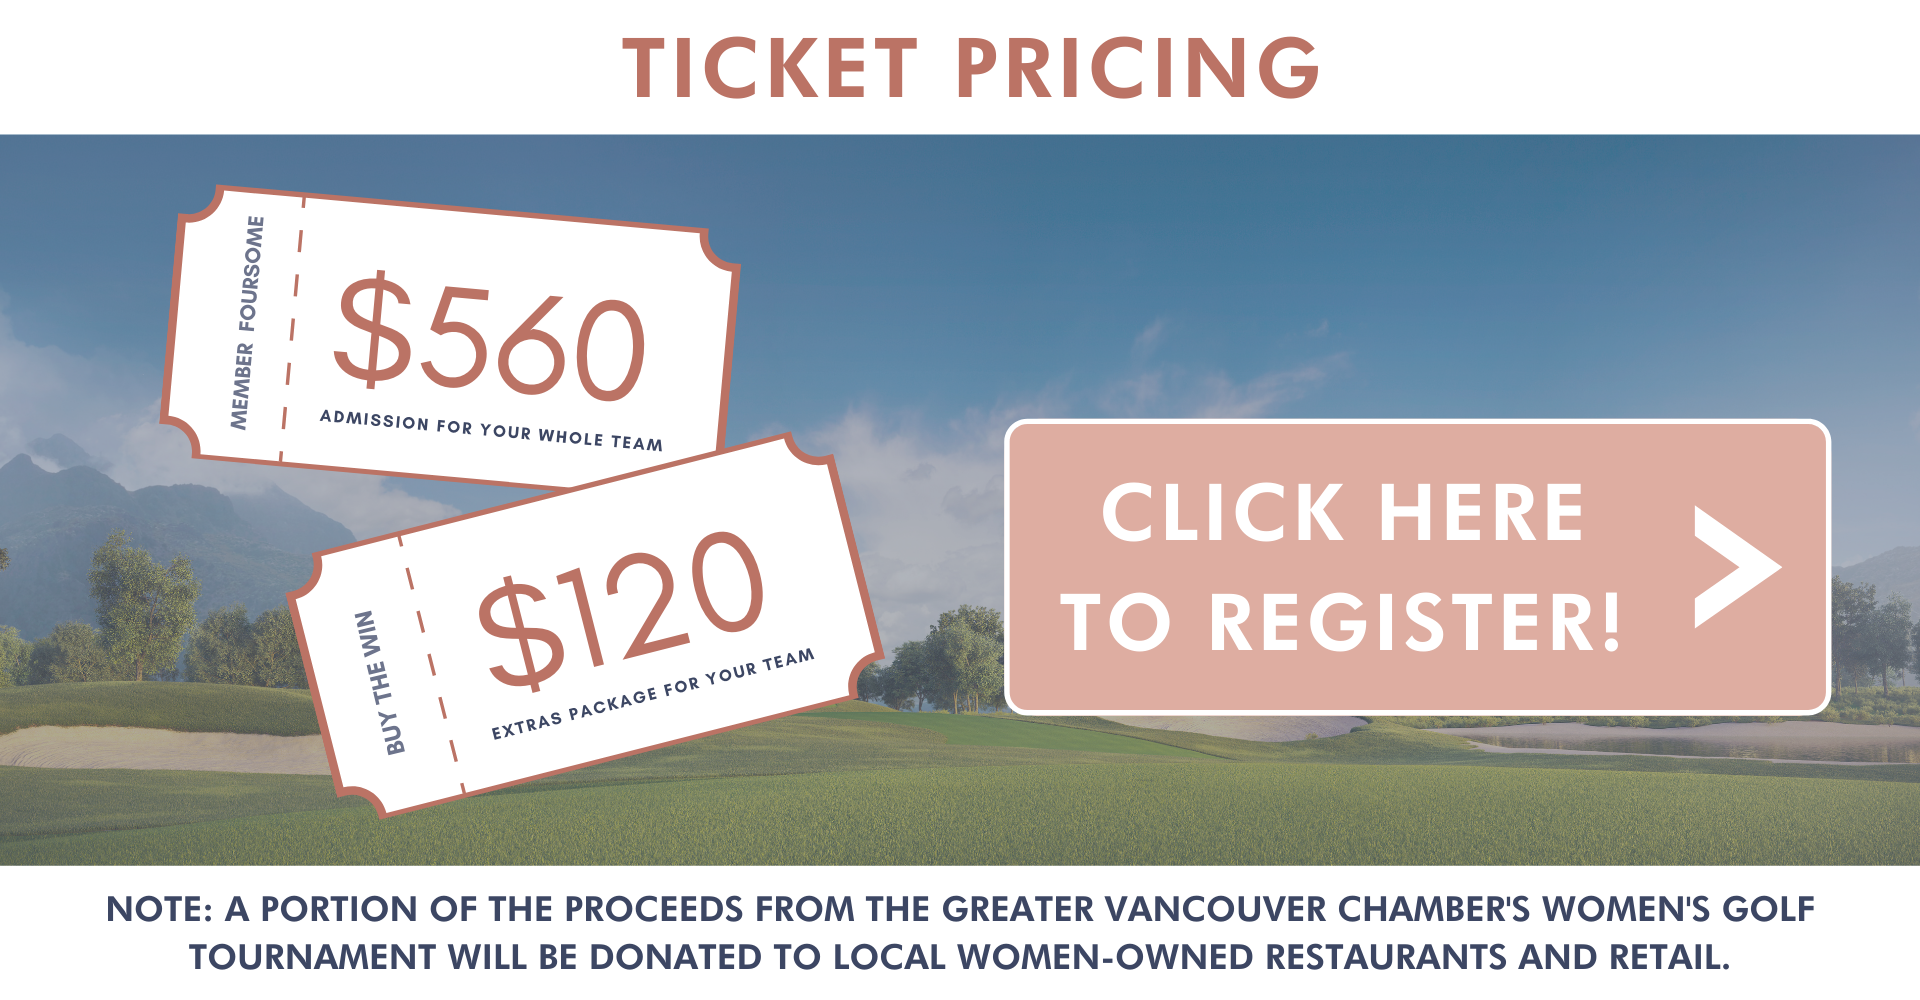 ticket pricing note a portion A portion of the proceeds from the Greater Vancouver Chamber's Annual Women's Golf Tournament will be donated to local Women-Owned Restaurants and Retail click here to register arrow CTA button register women's tournament buy the win, extras for team member foursome admission for whole